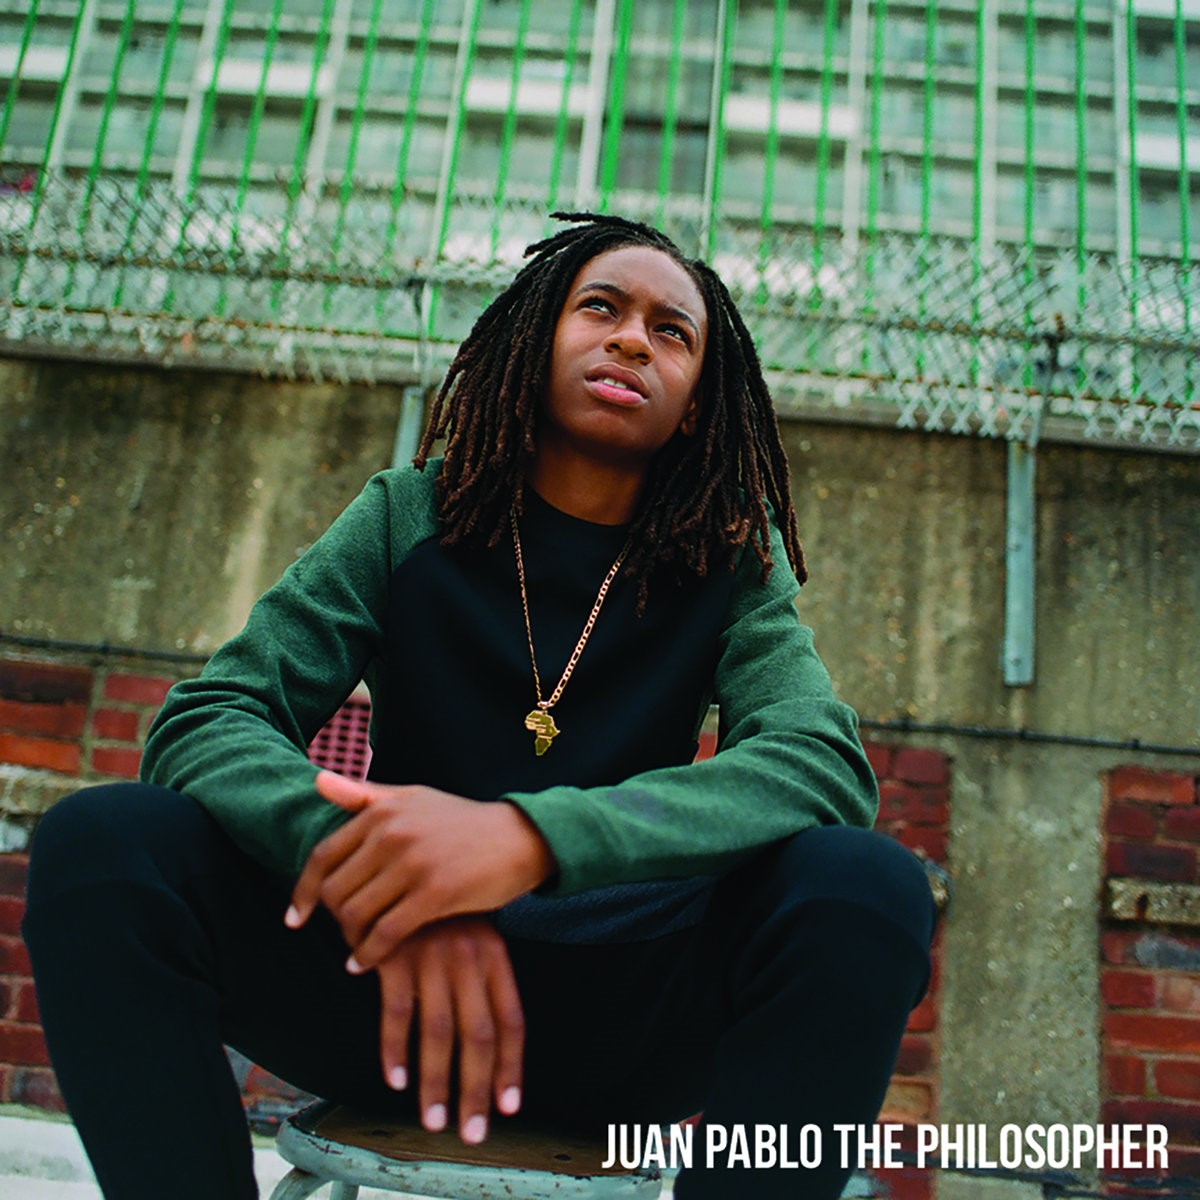 Ezra Collective - Juan Pablo: The Philosopher